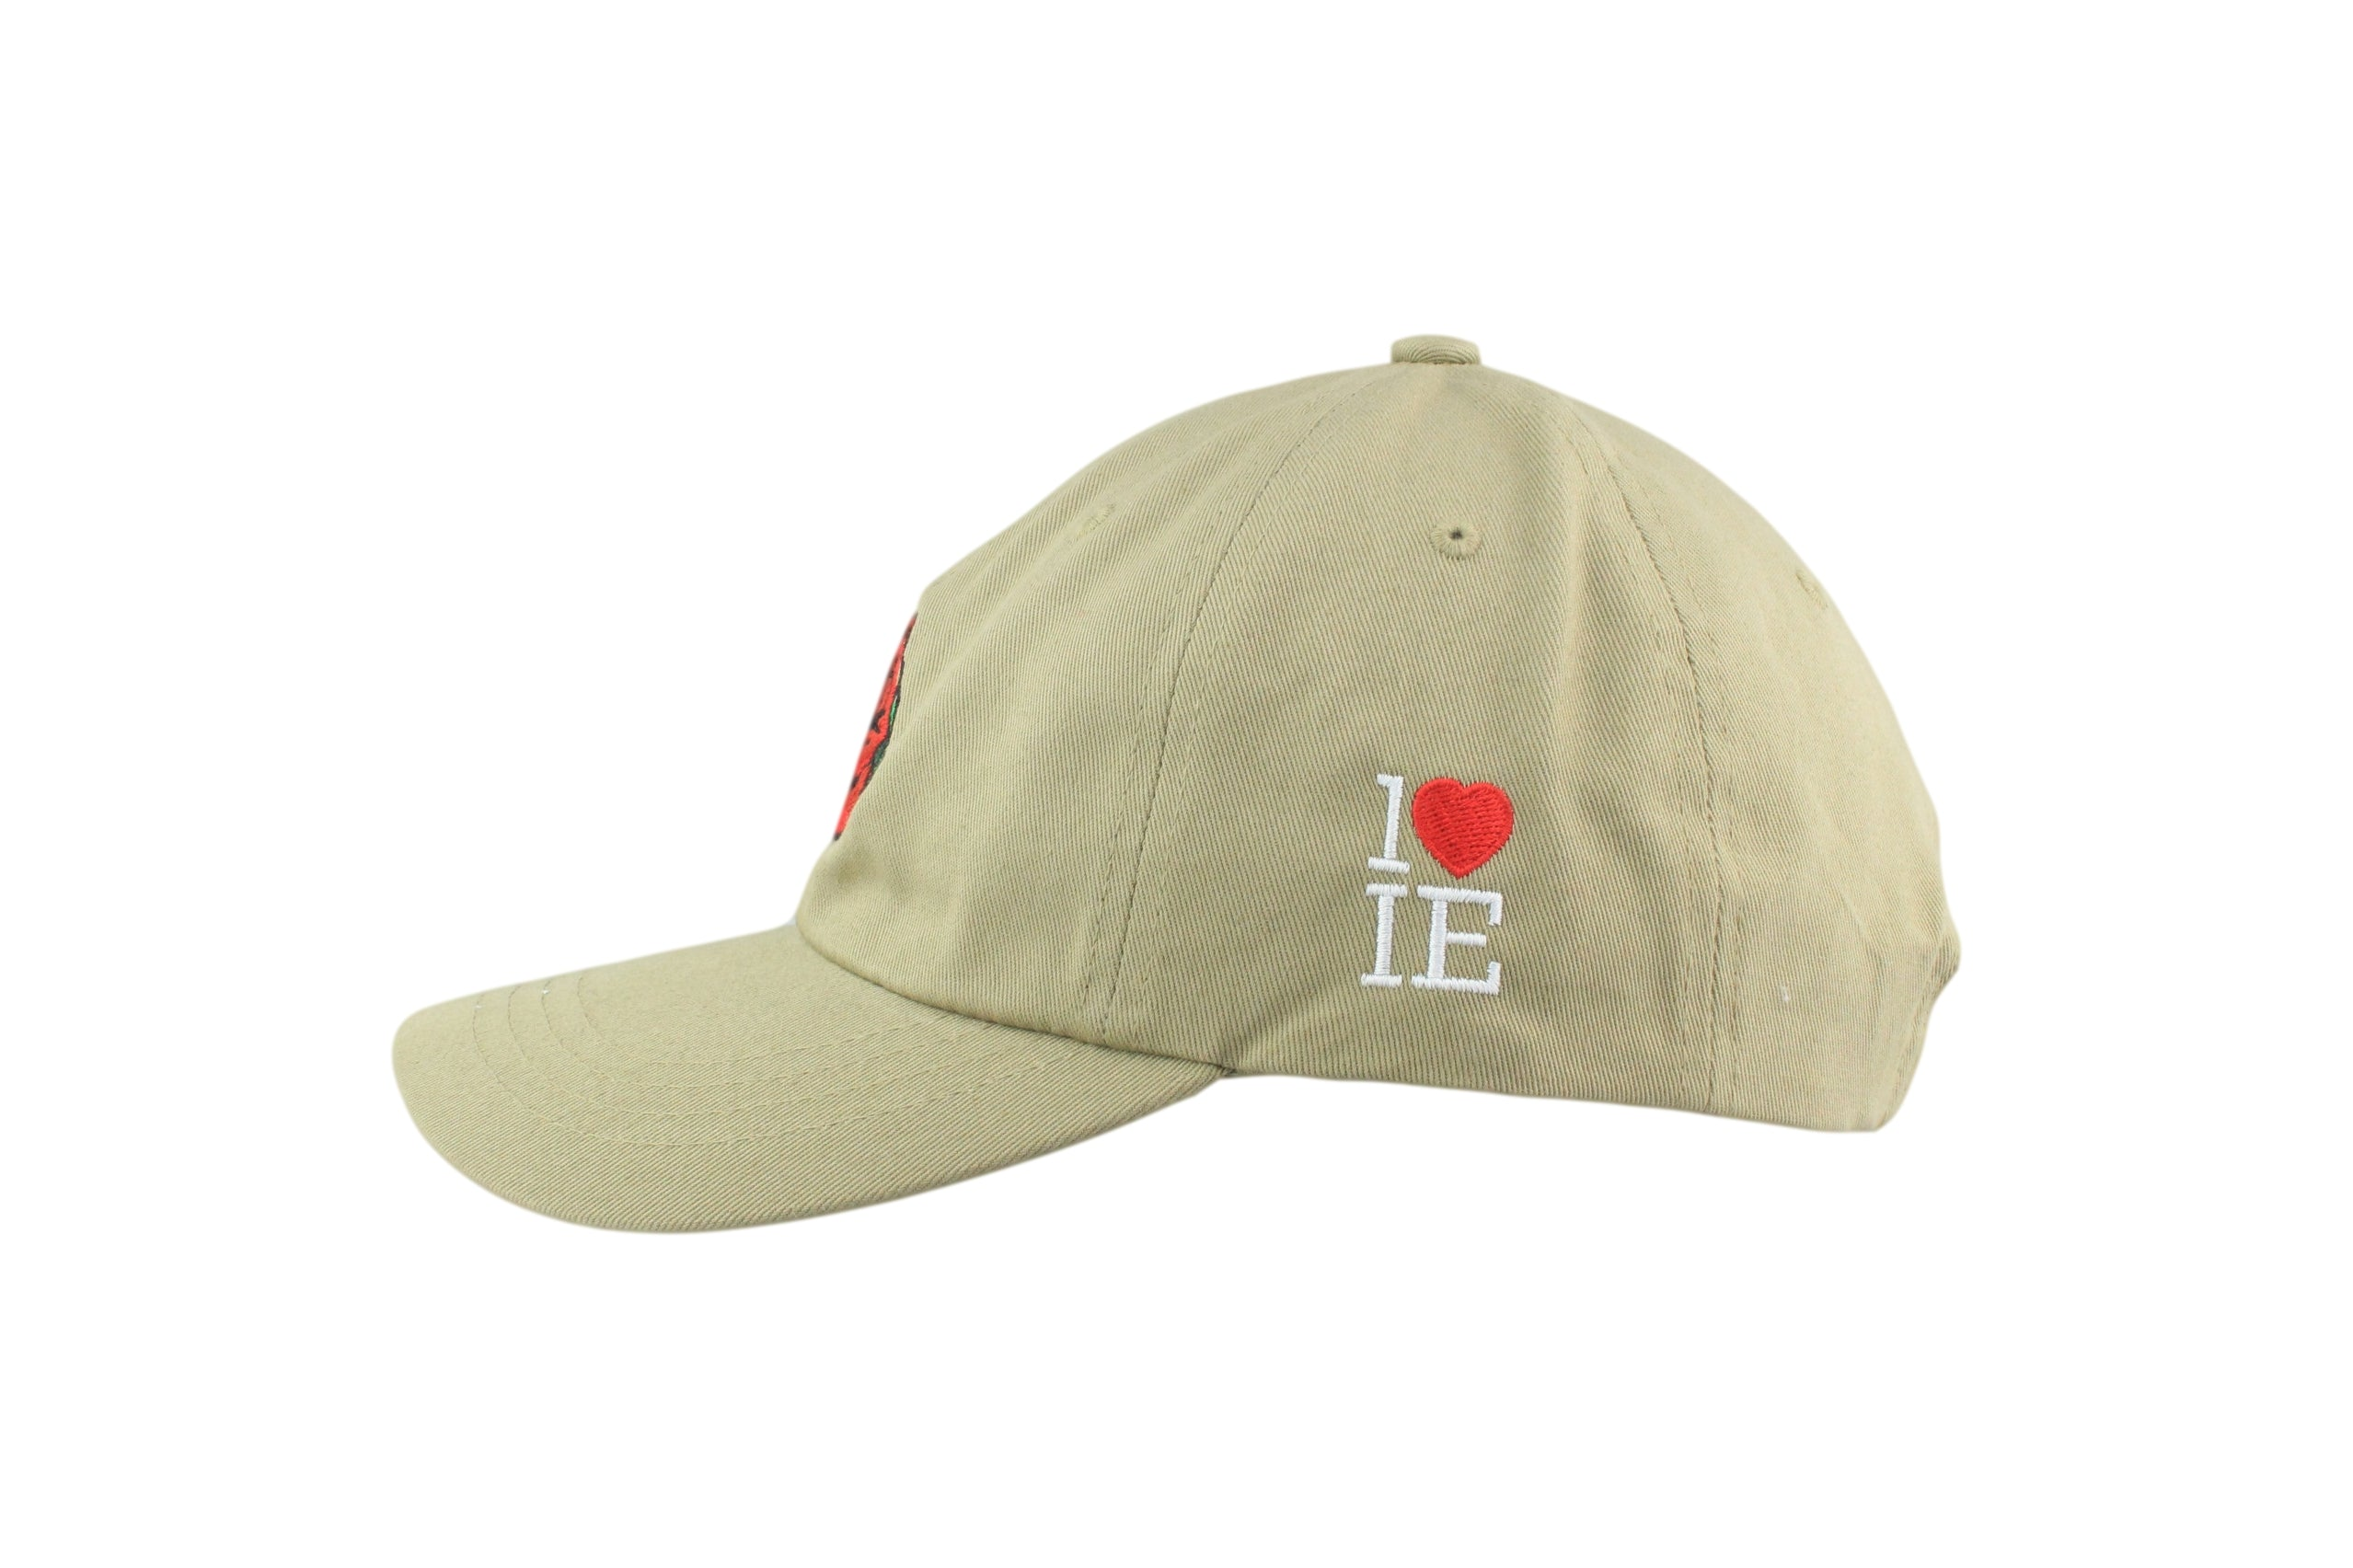 9791936932d Big Rose Dad Hat – 1LoveIE